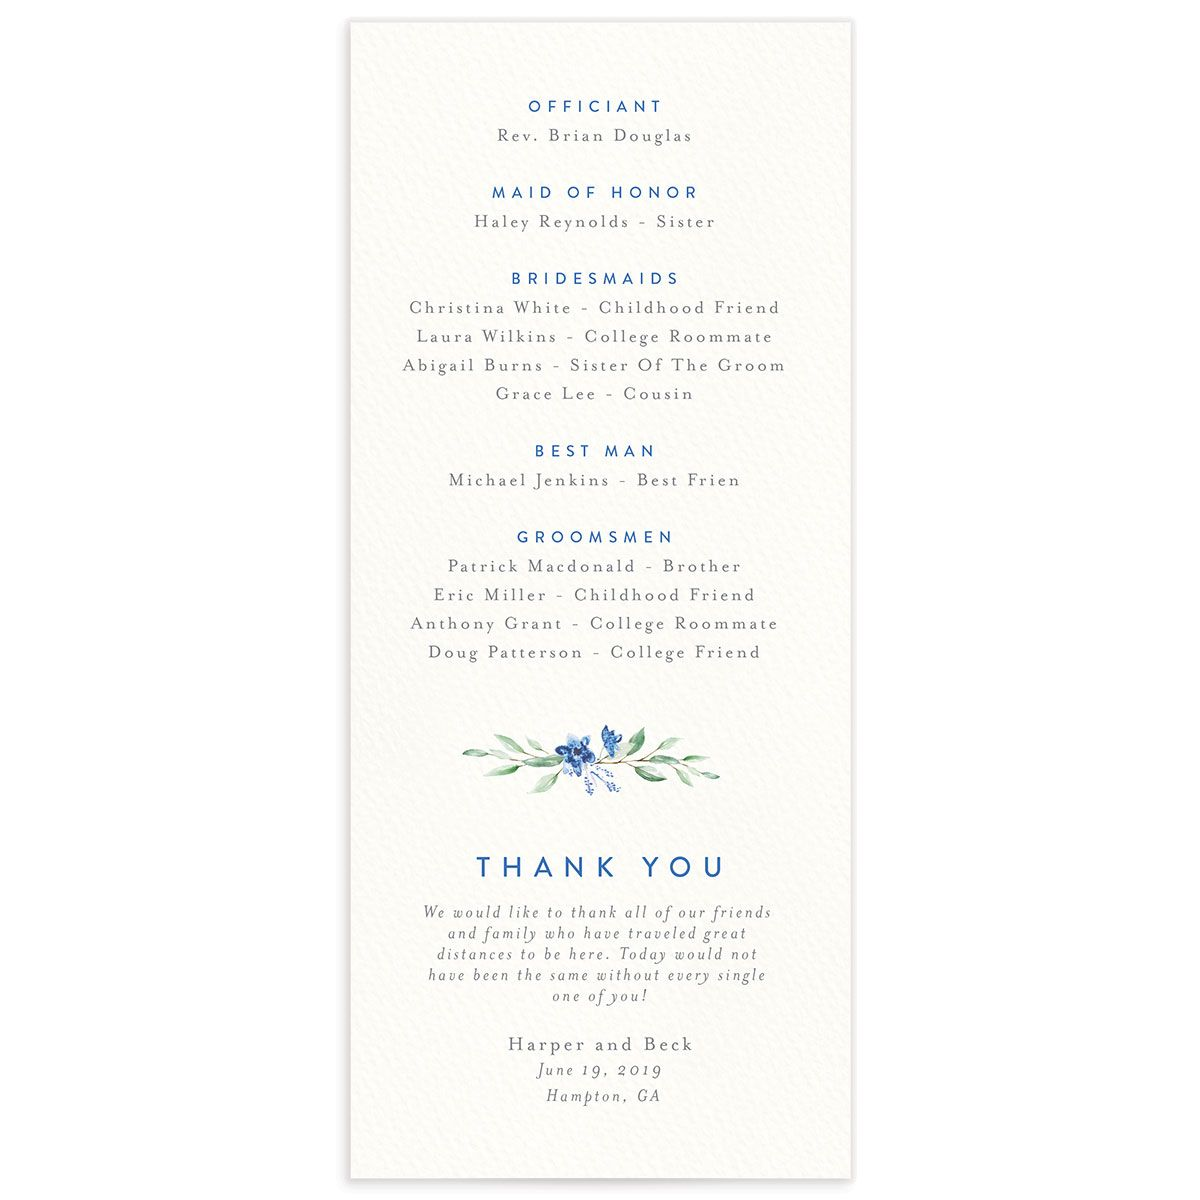 watercolor crest wedding programs in blue back